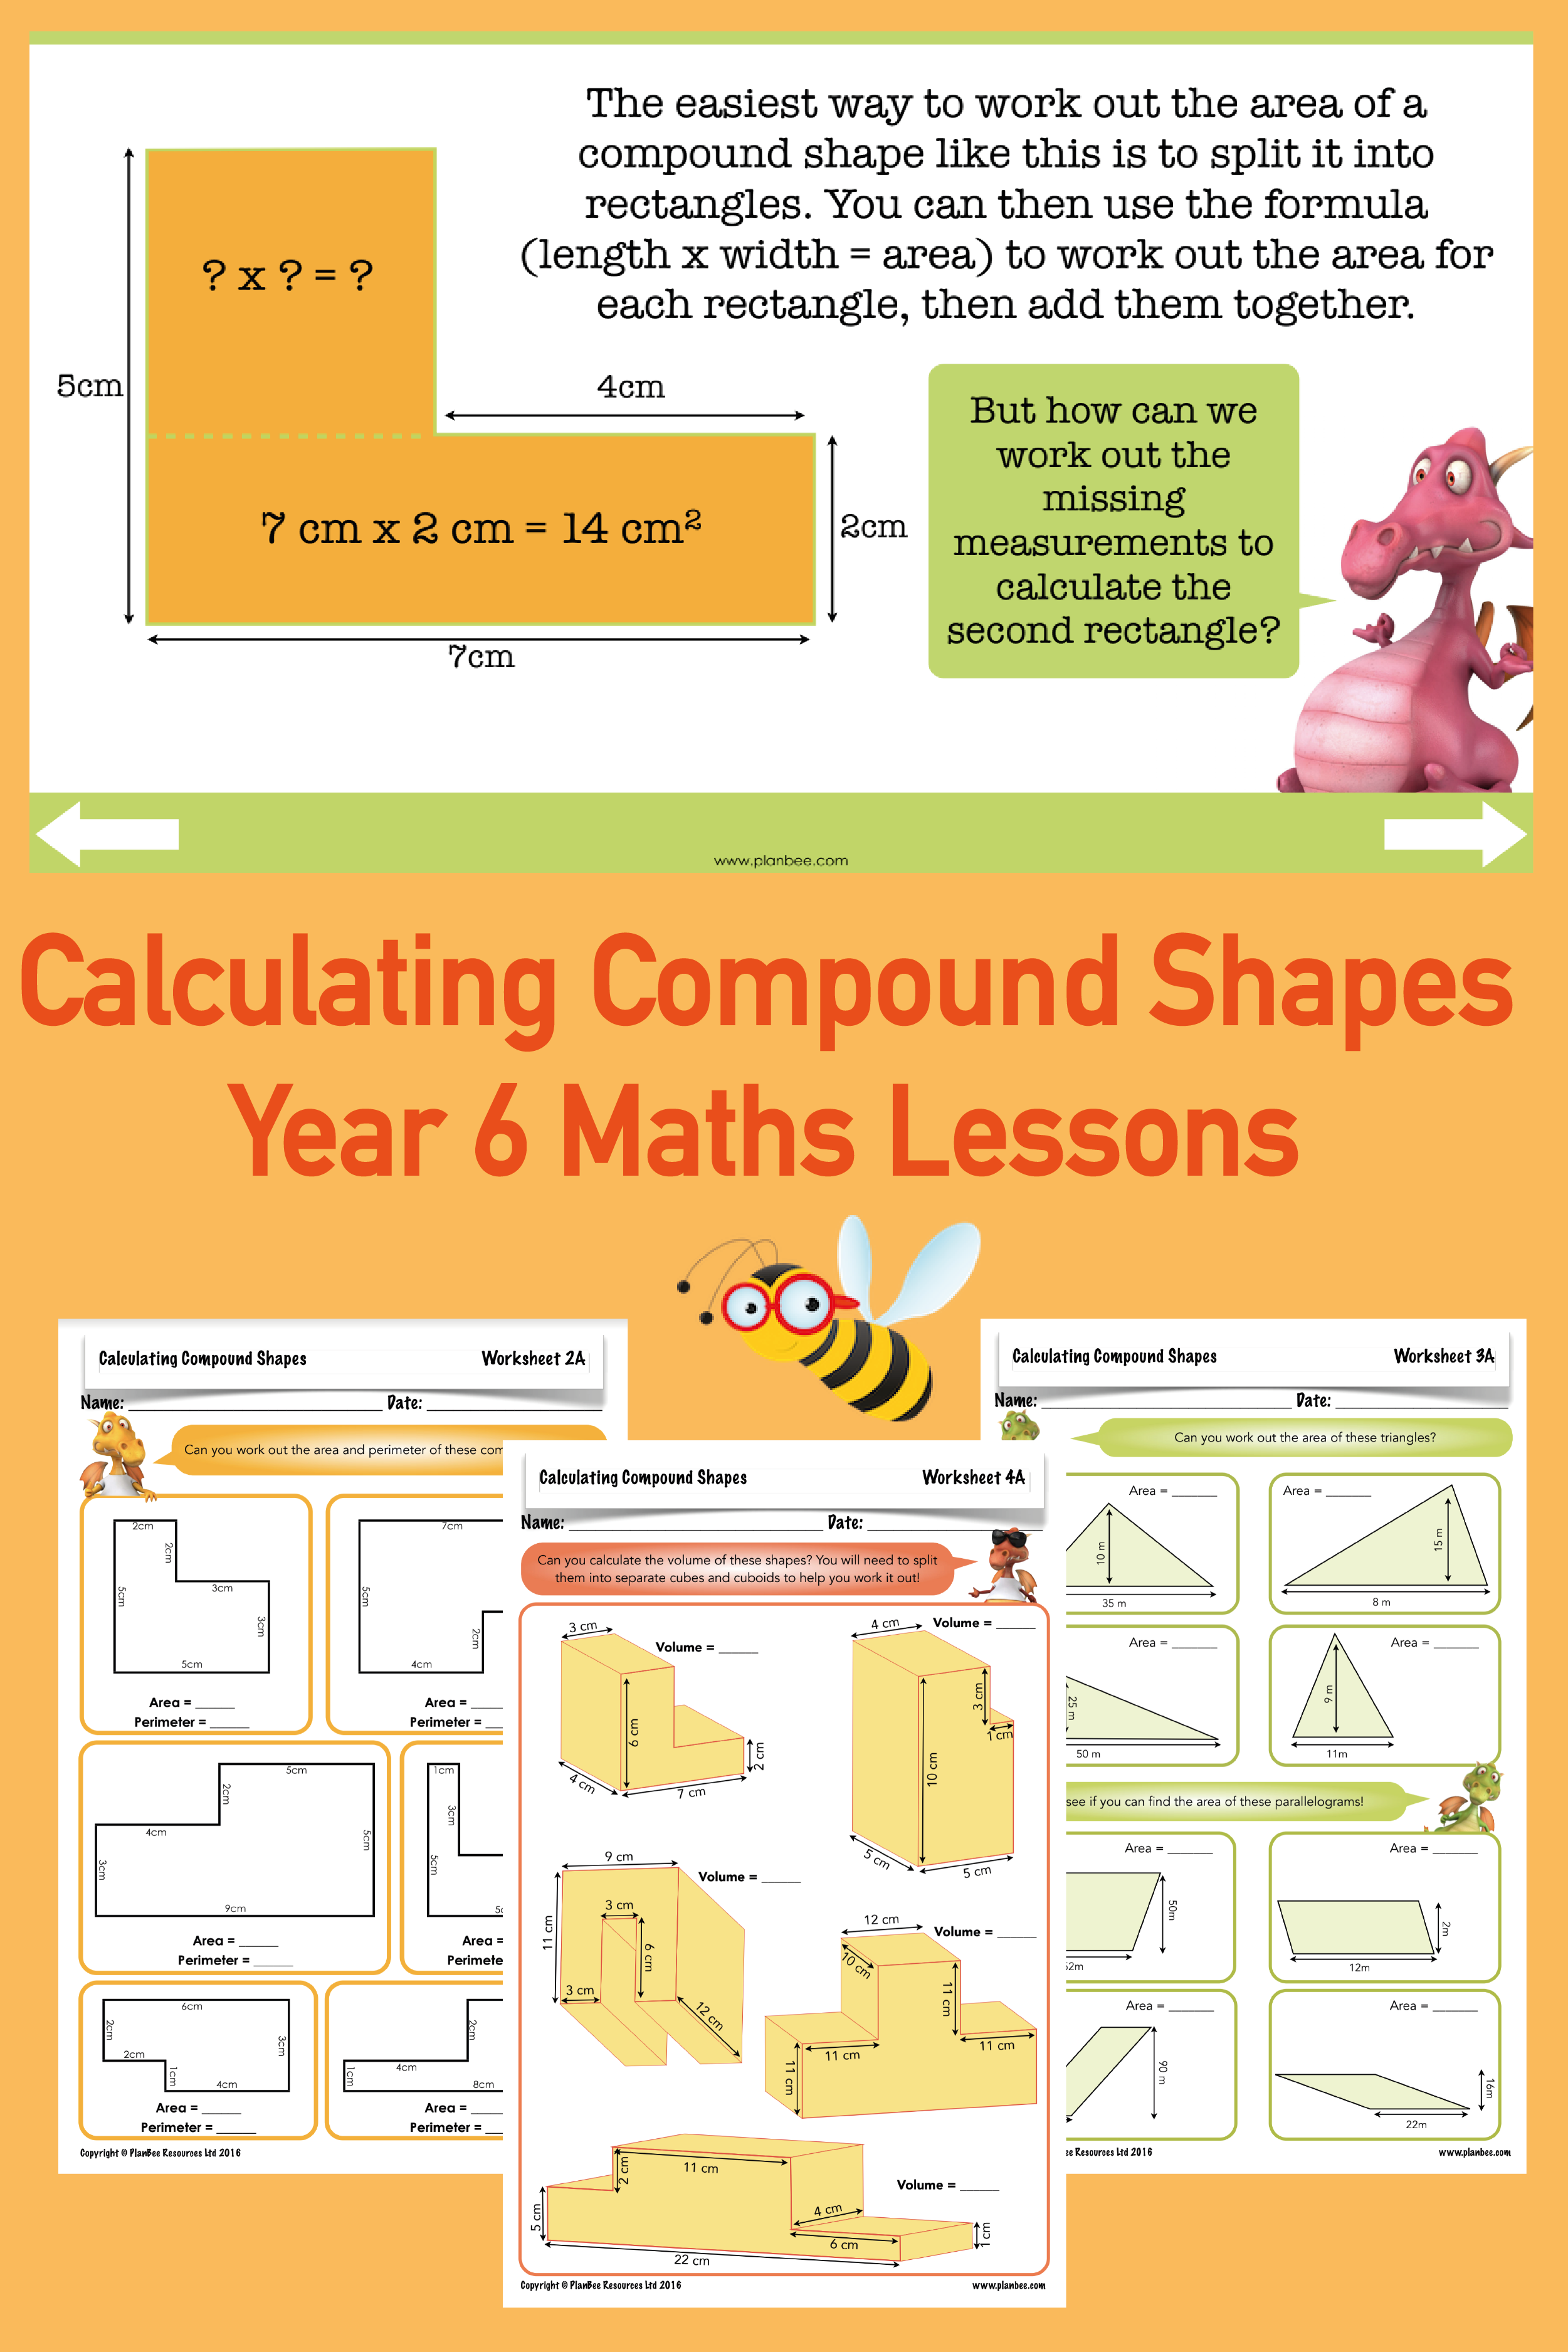 Calculating Compound Shapes